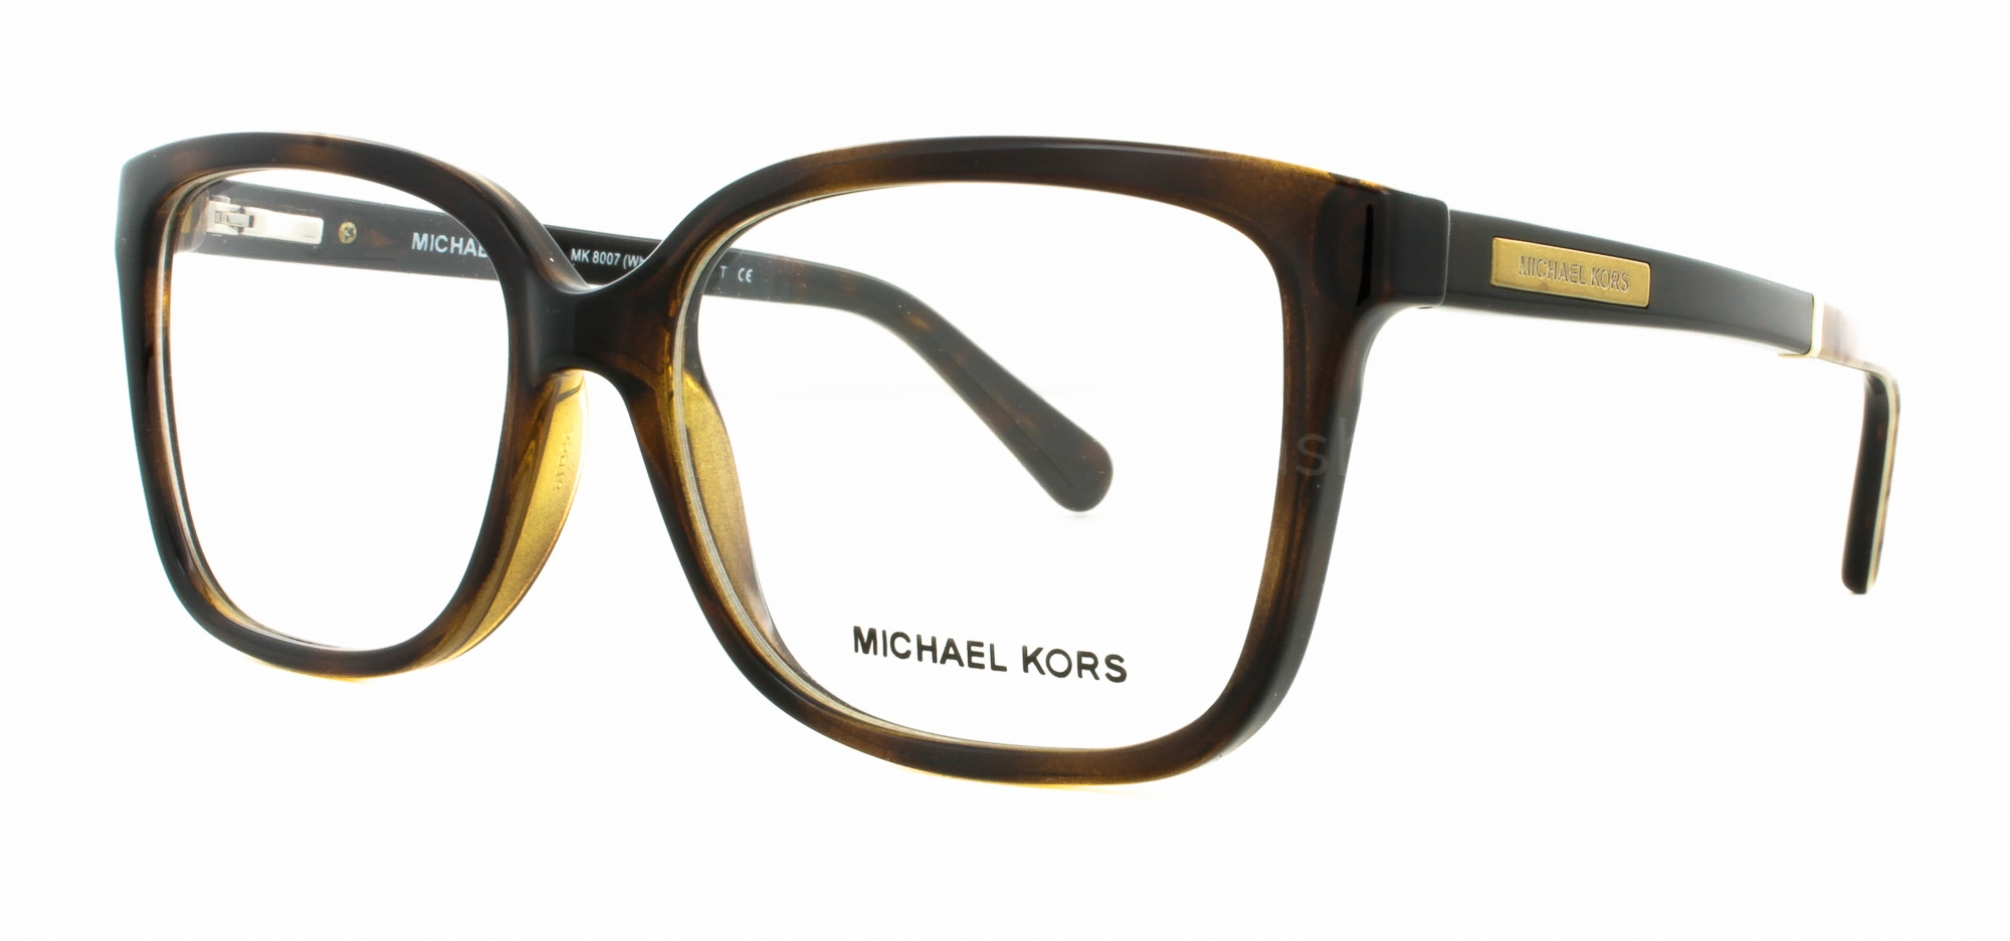 MICHAEL KORS WHITSUNDAYS 8007